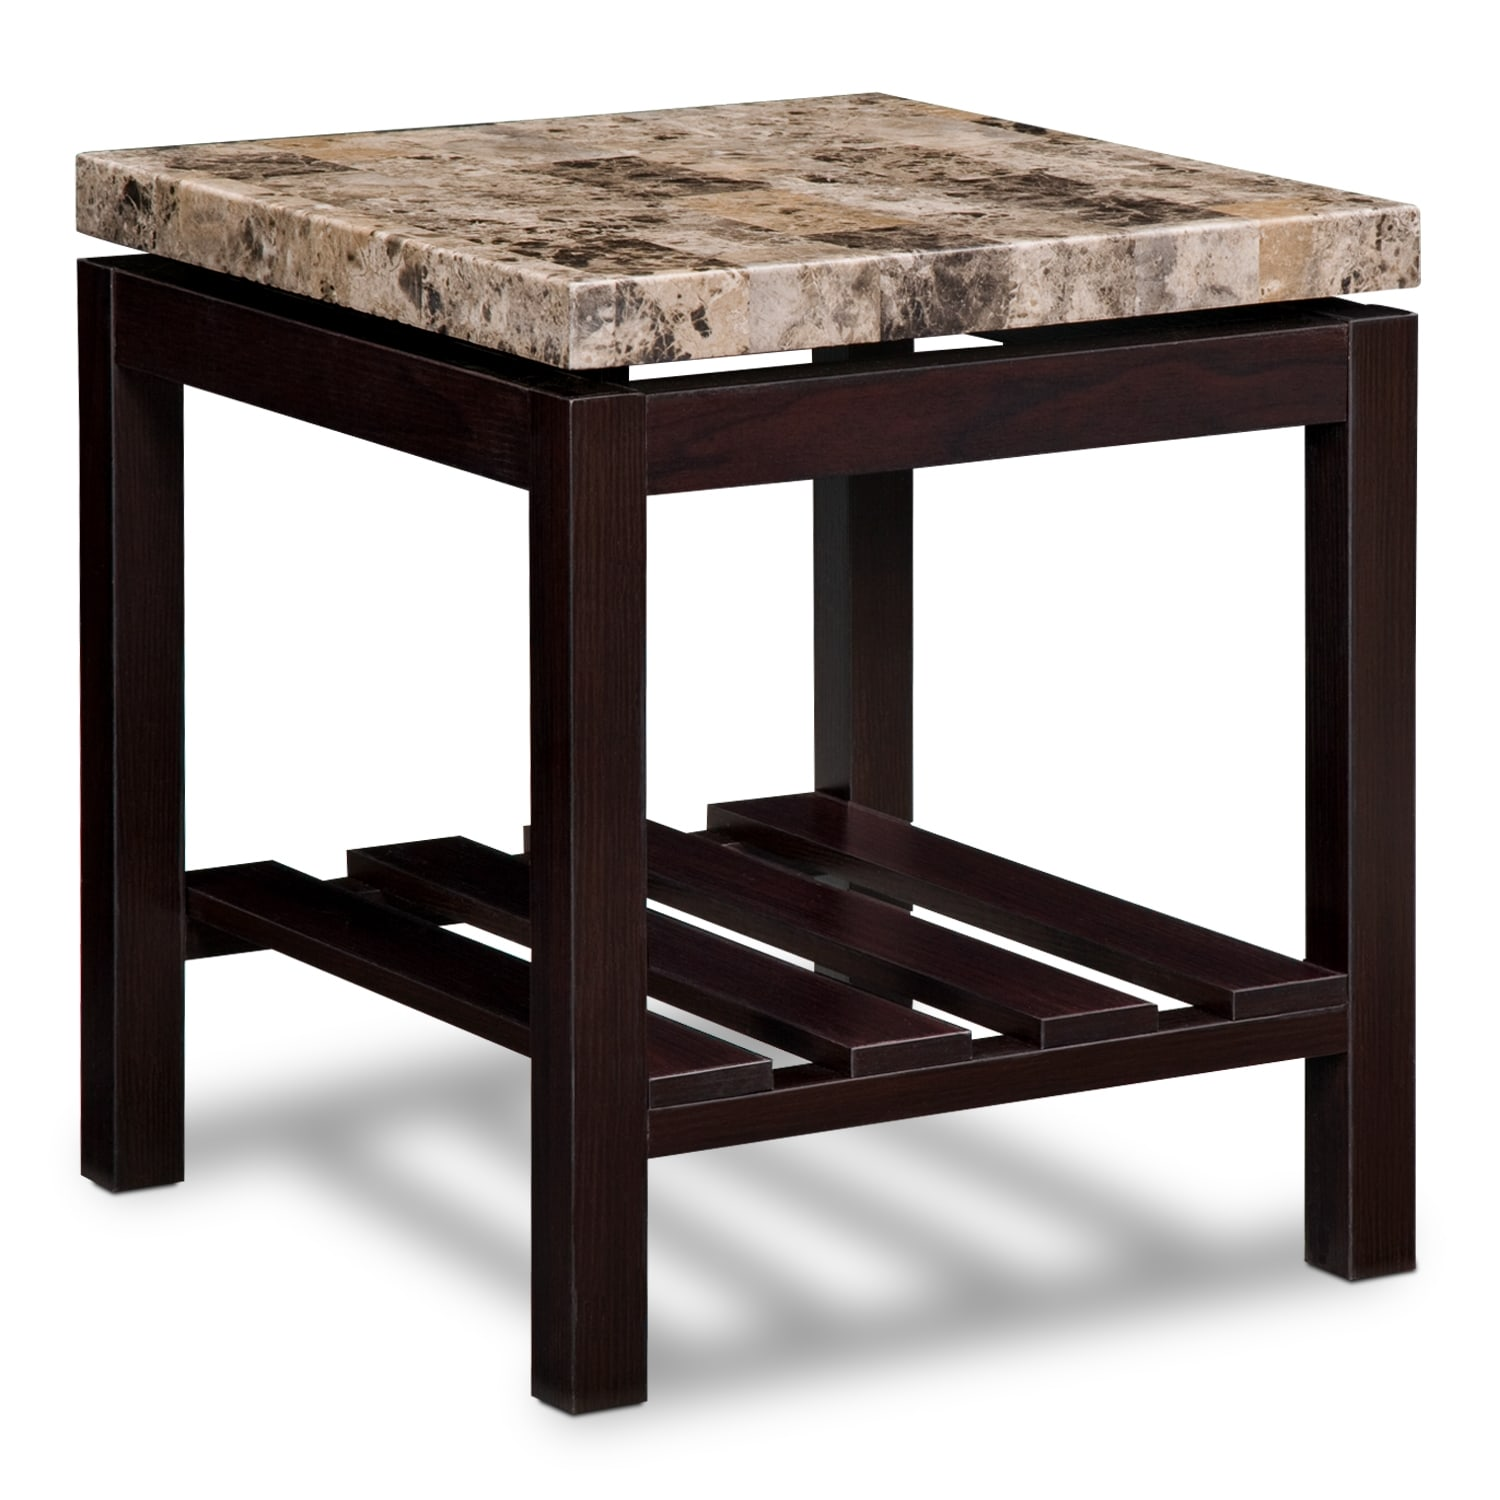 Audra Occasional Tables End Table Value City Furniture : 294709 from valuecityfurniture.com size 1500 x 1500 jpeg 620kB